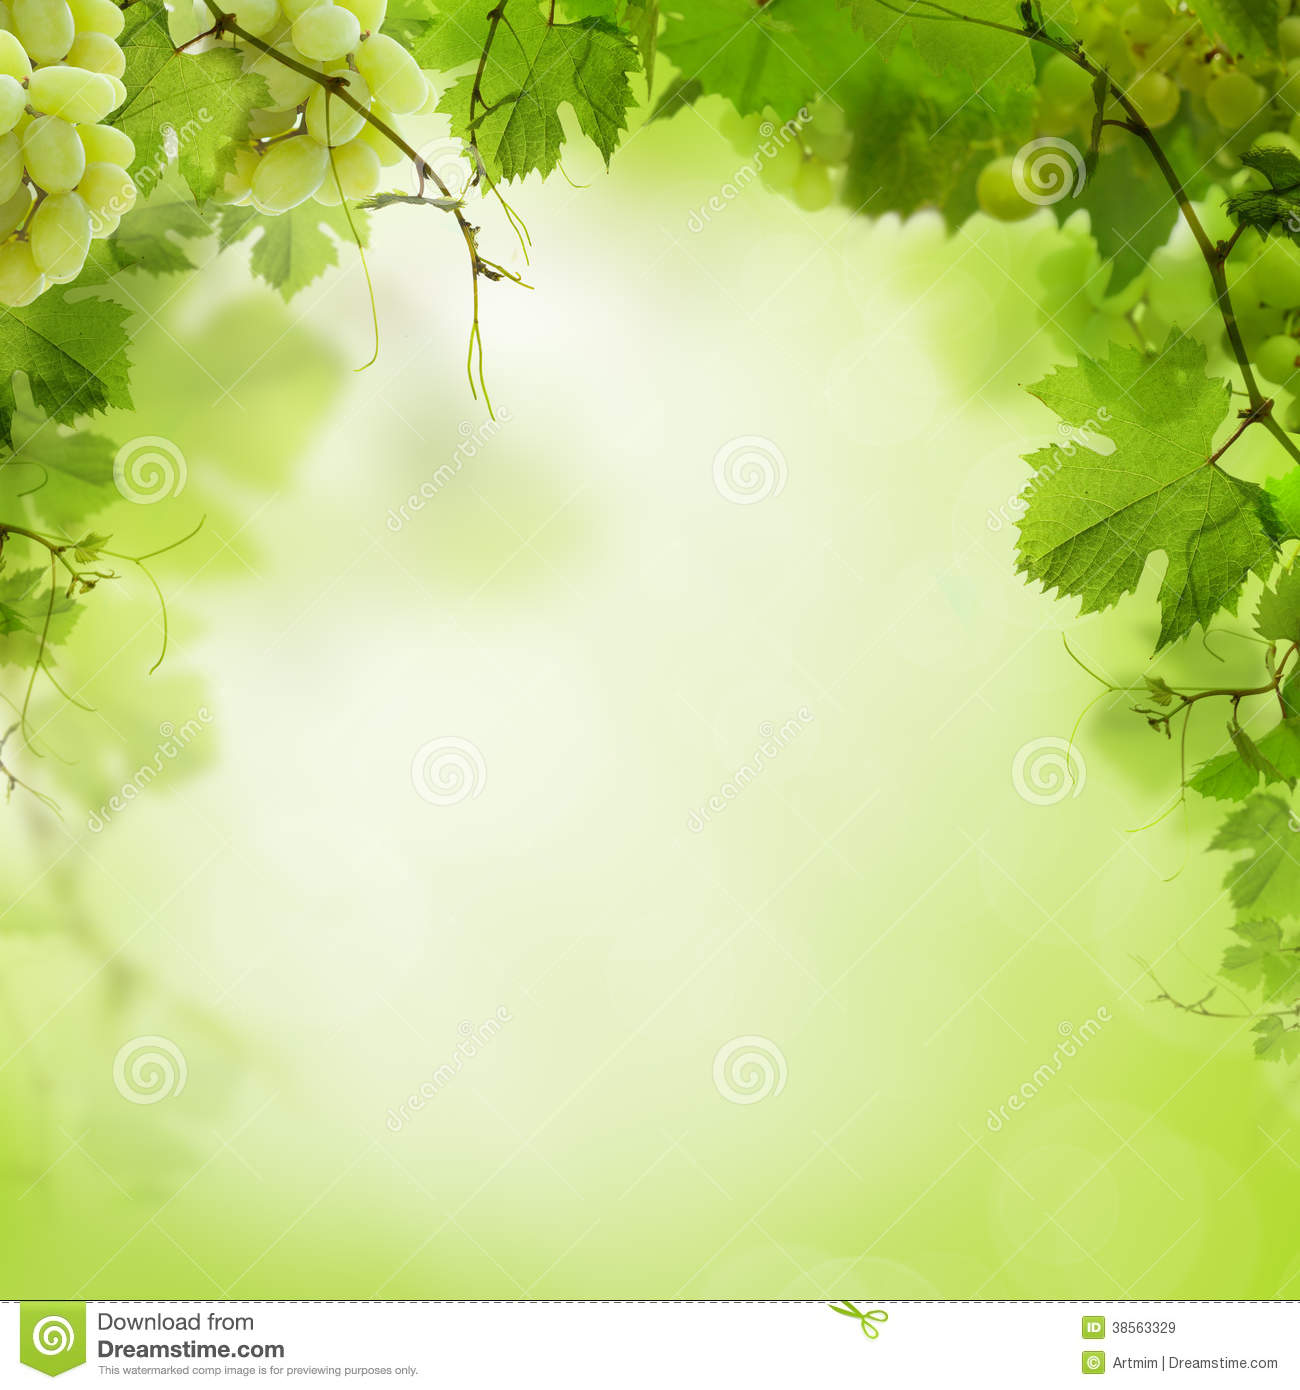 Sunny Green Background With Grape Vines Royalty Free Stock Images ...